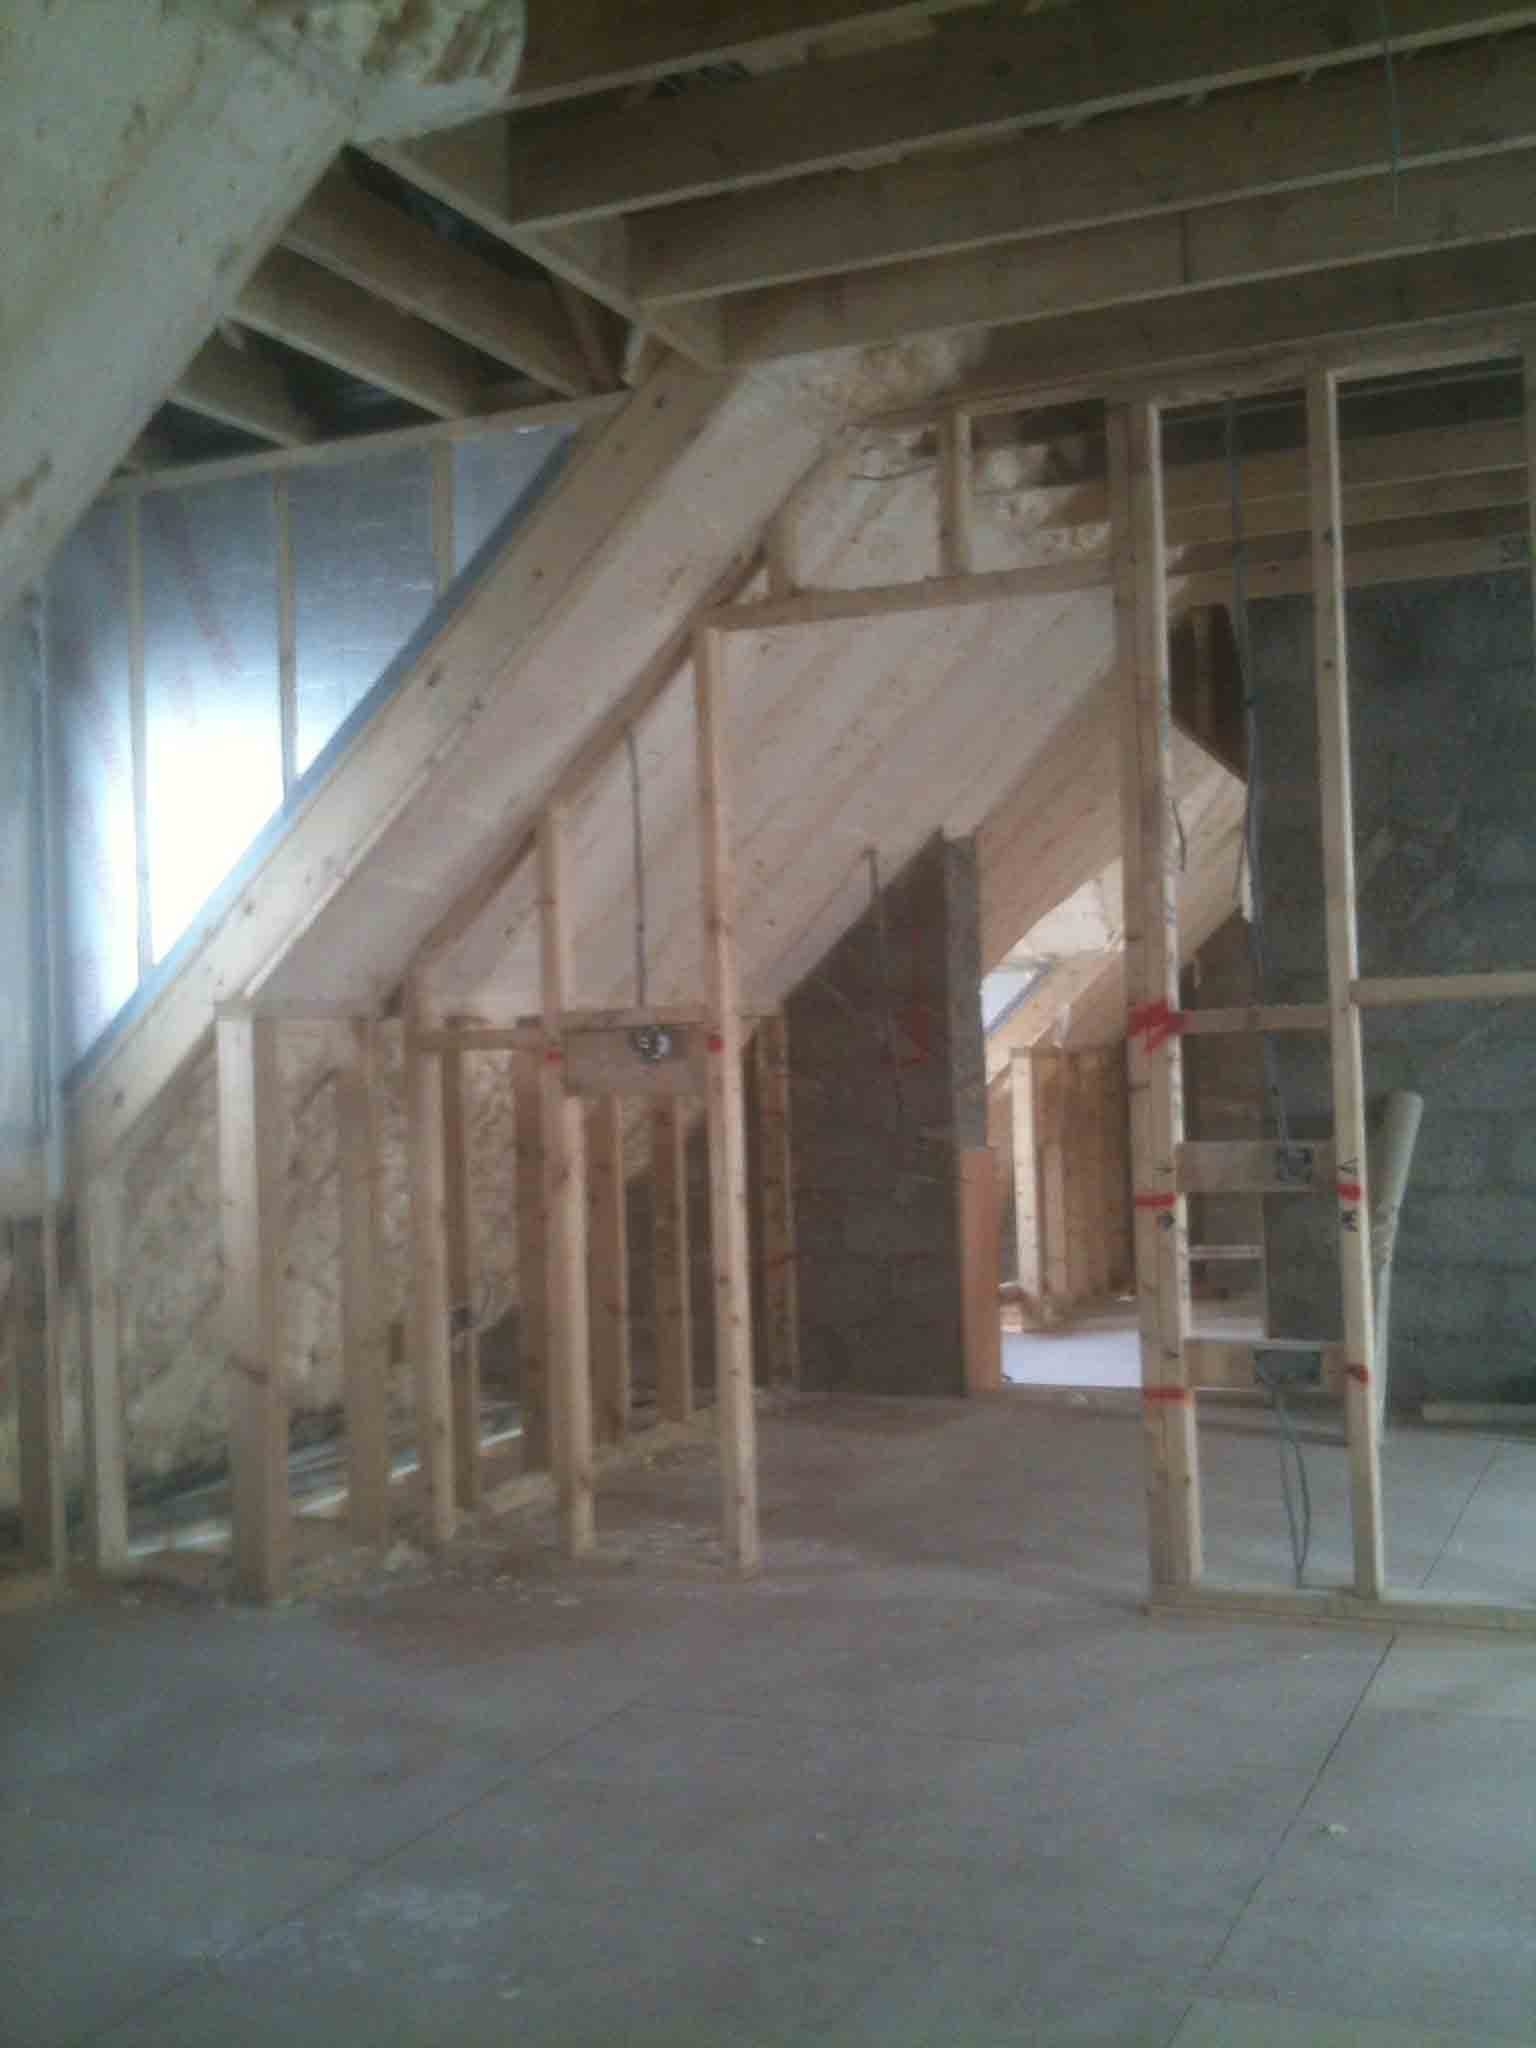 Attic Insulation Cork Kerry Limerick Clare Tipperary And Waterford inside proportions 1536 X 2048 & Attic And Wall Insulation Cork u2022 Attic Ideas